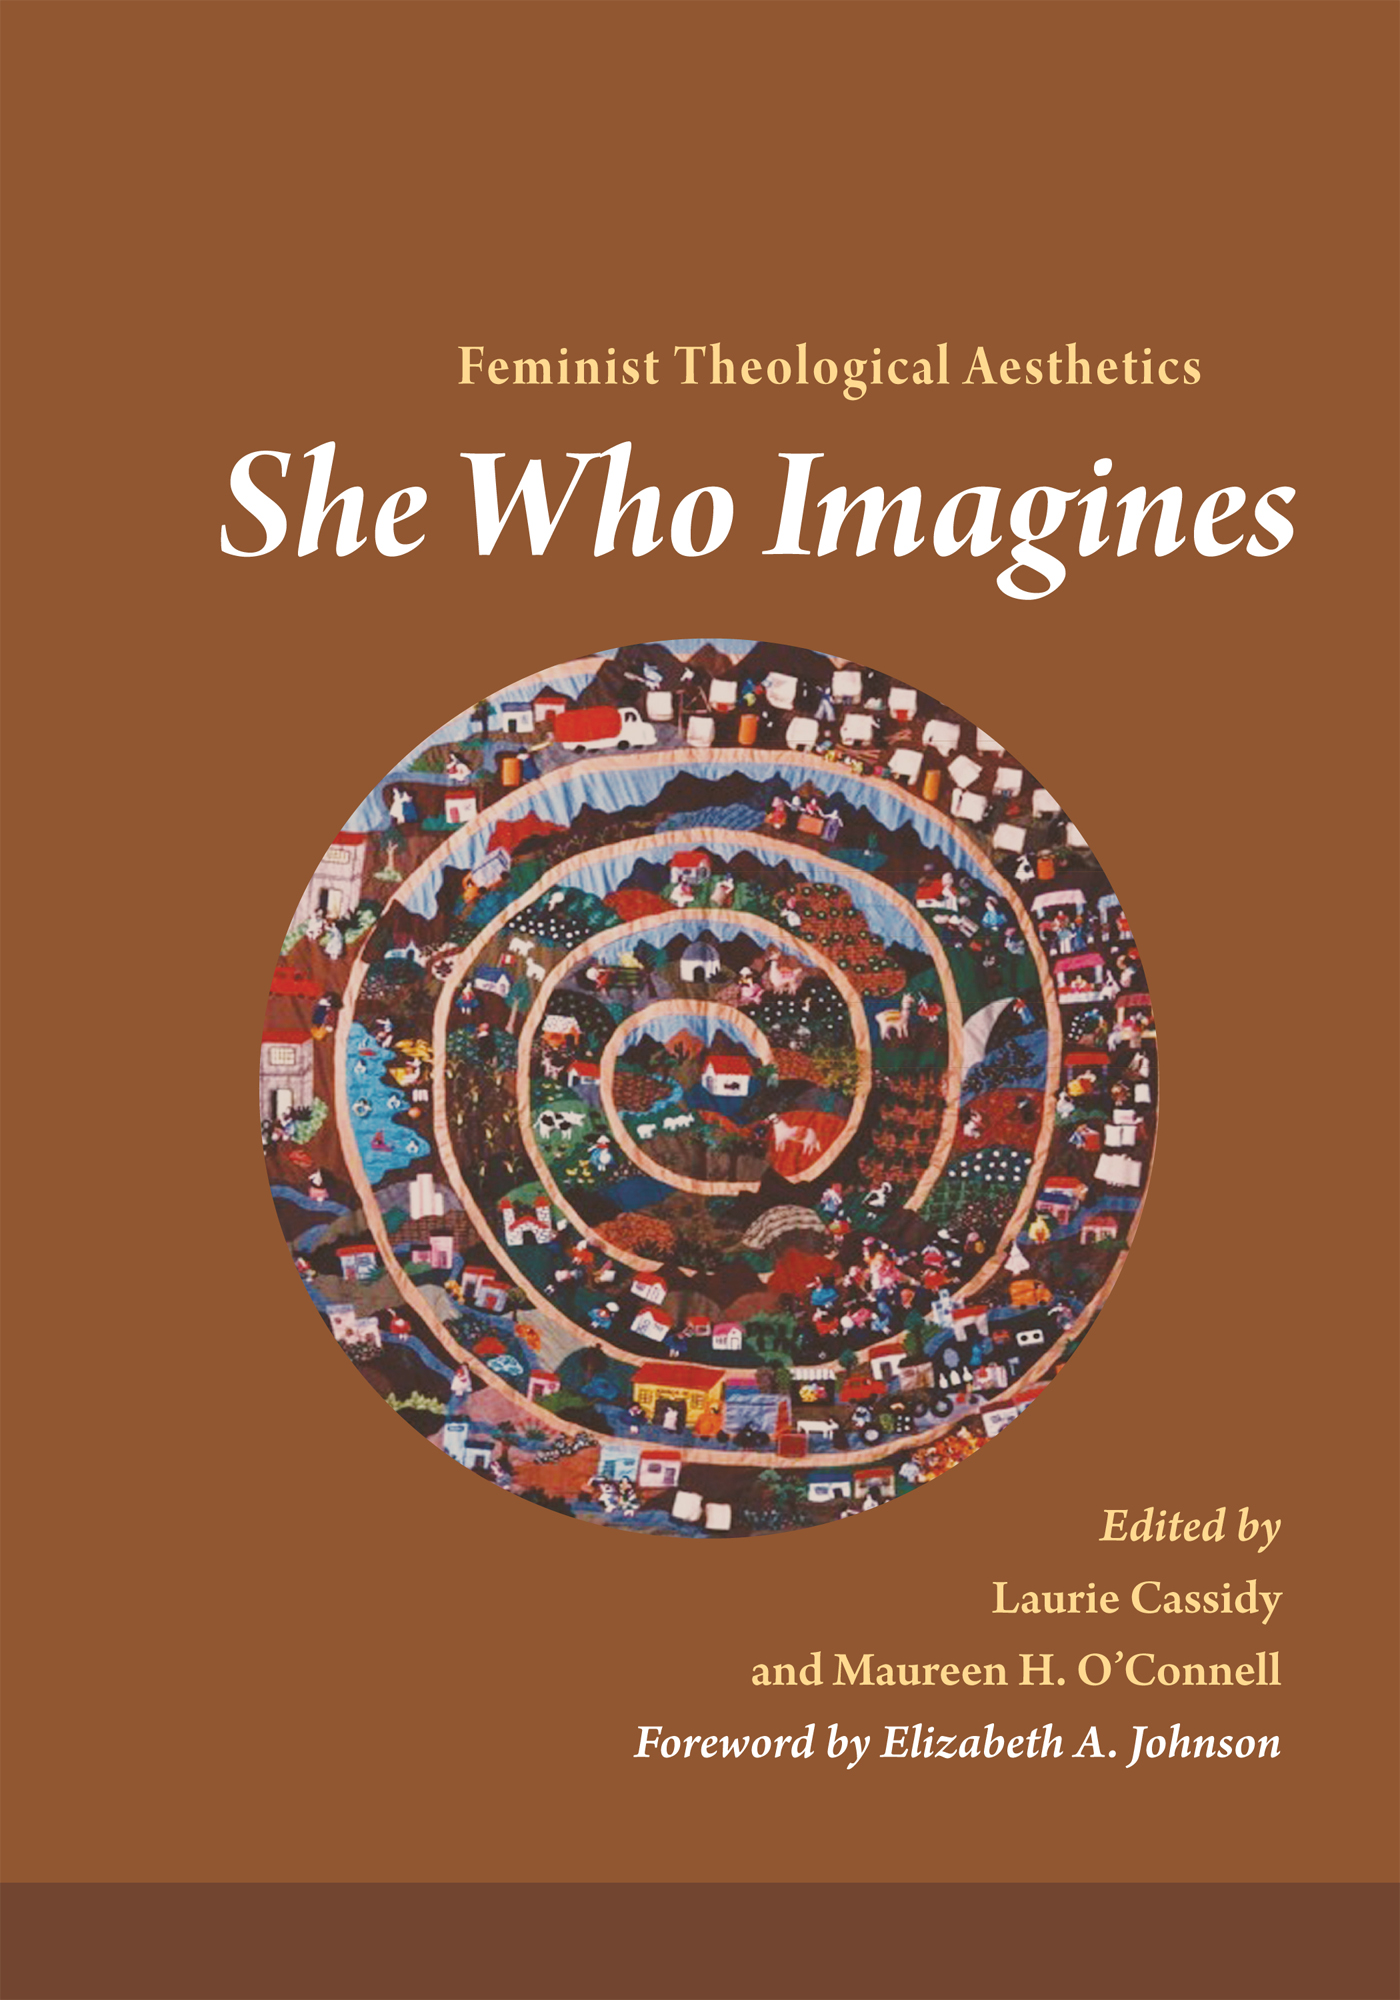 She Who Imagines: Feminist Theological Aesthetics